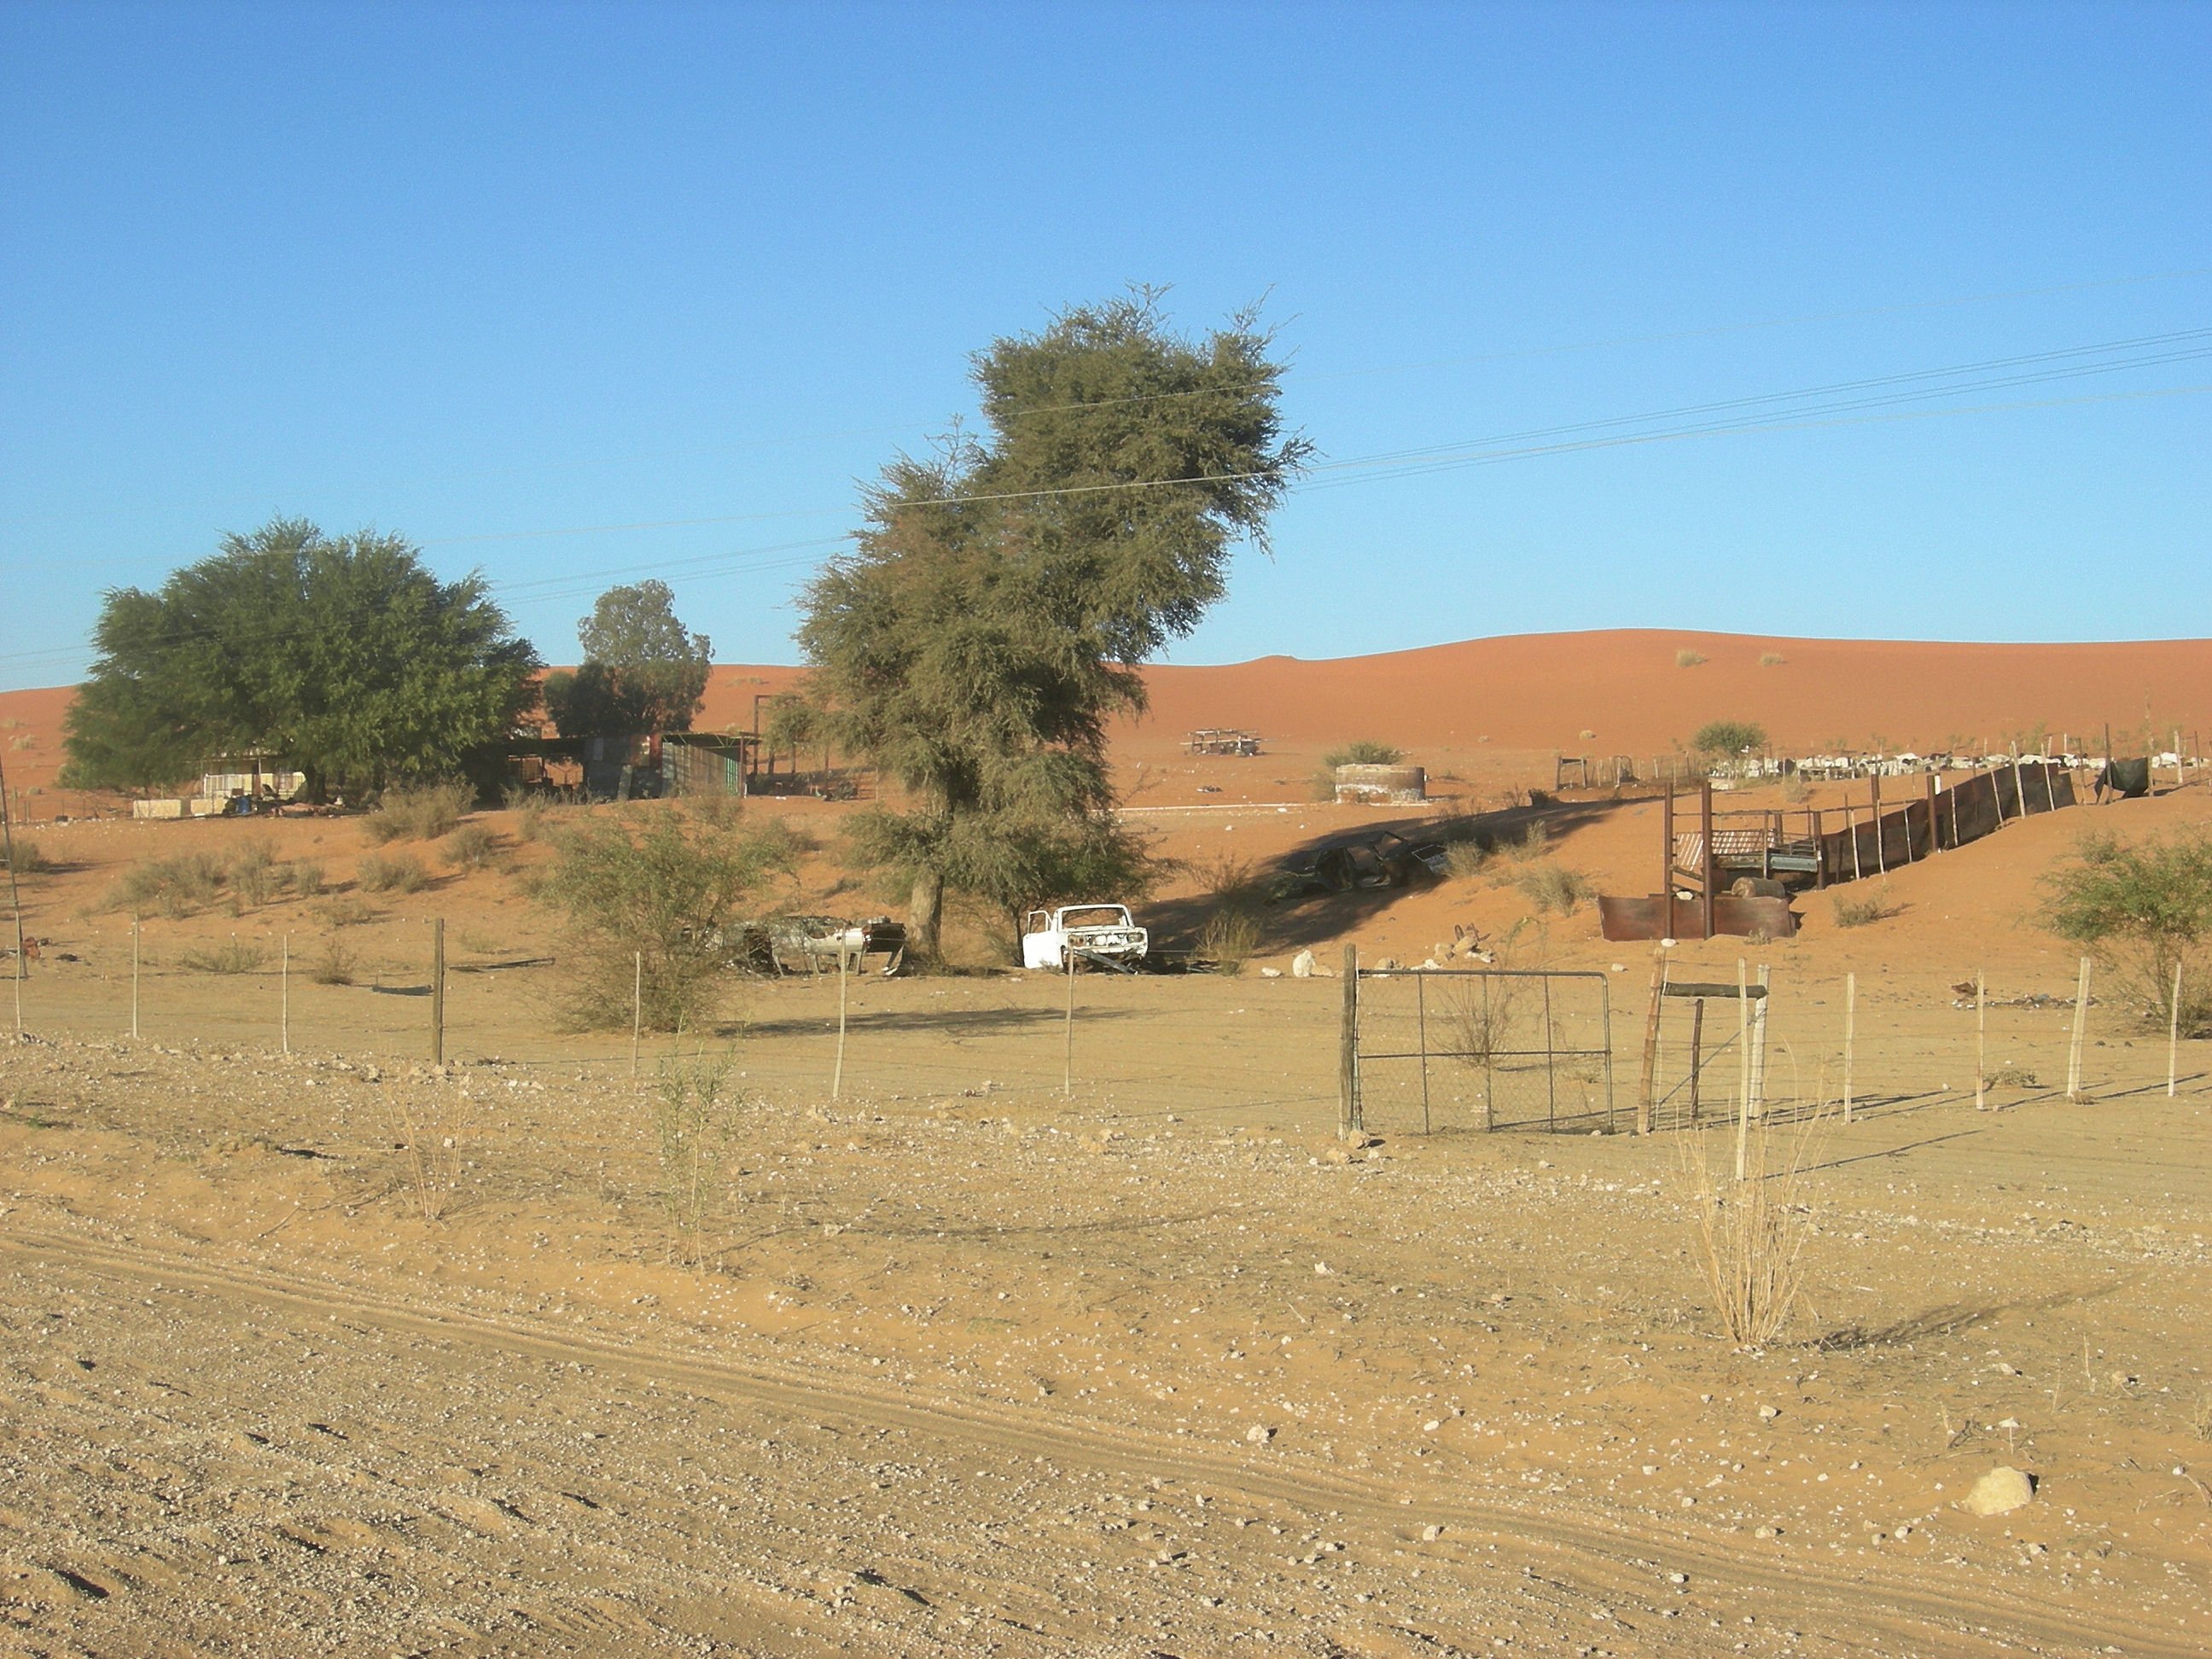 File:Kalahari Desert, South Africa (3179598367).jpg